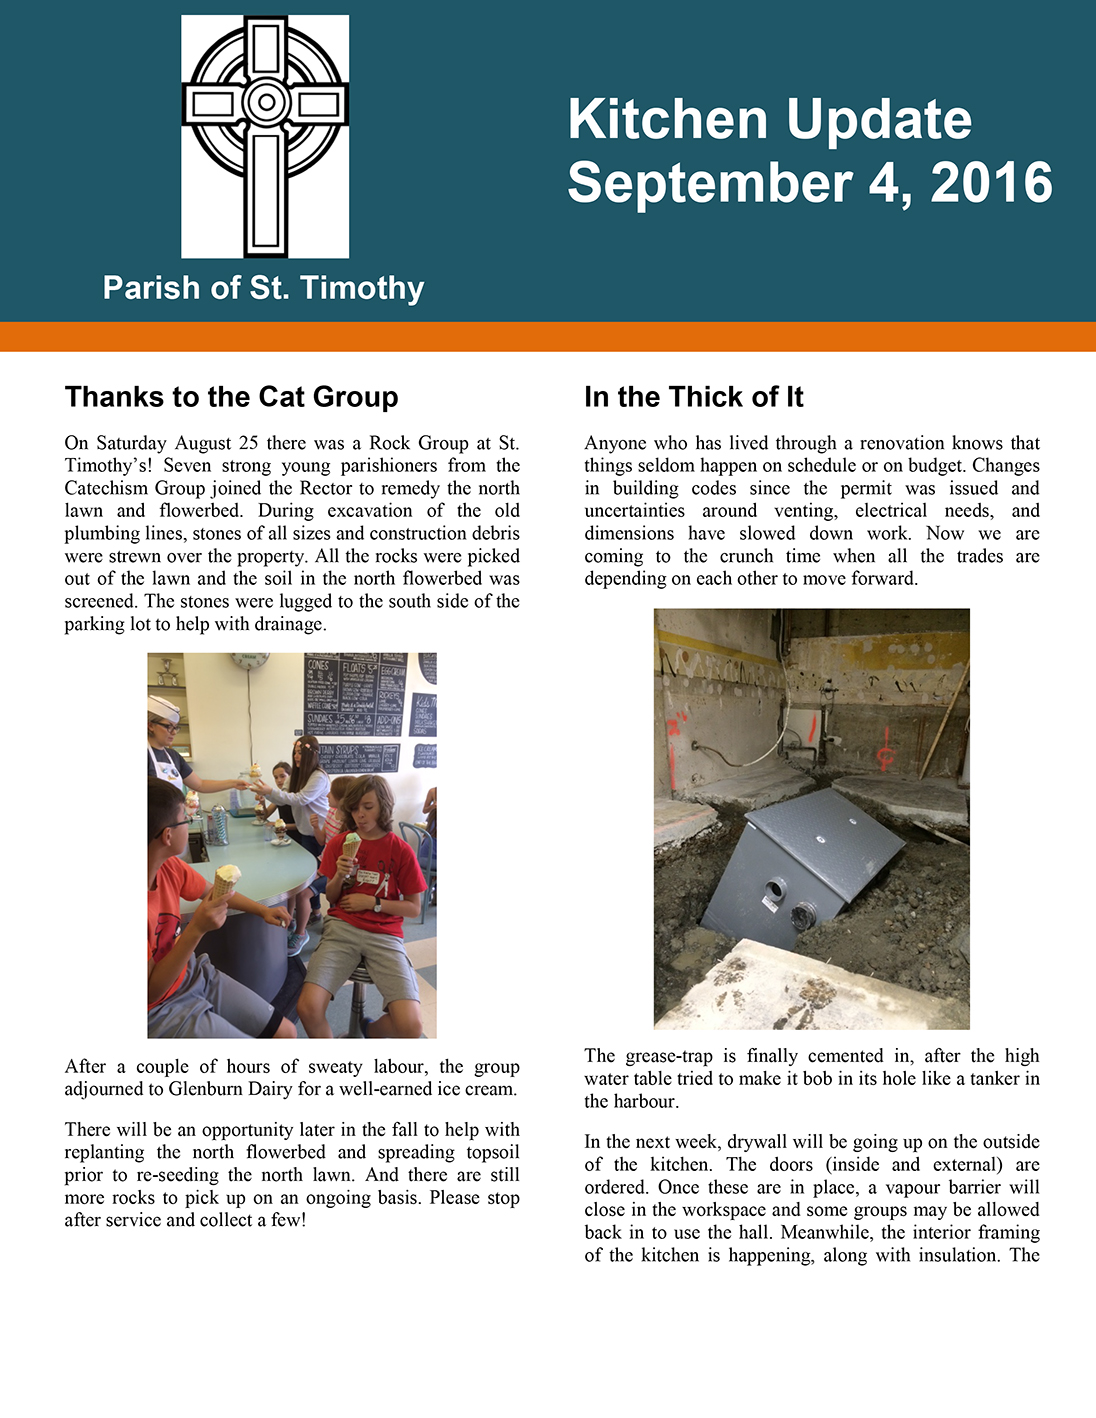 Newsletter: Kitchen Update - September 4